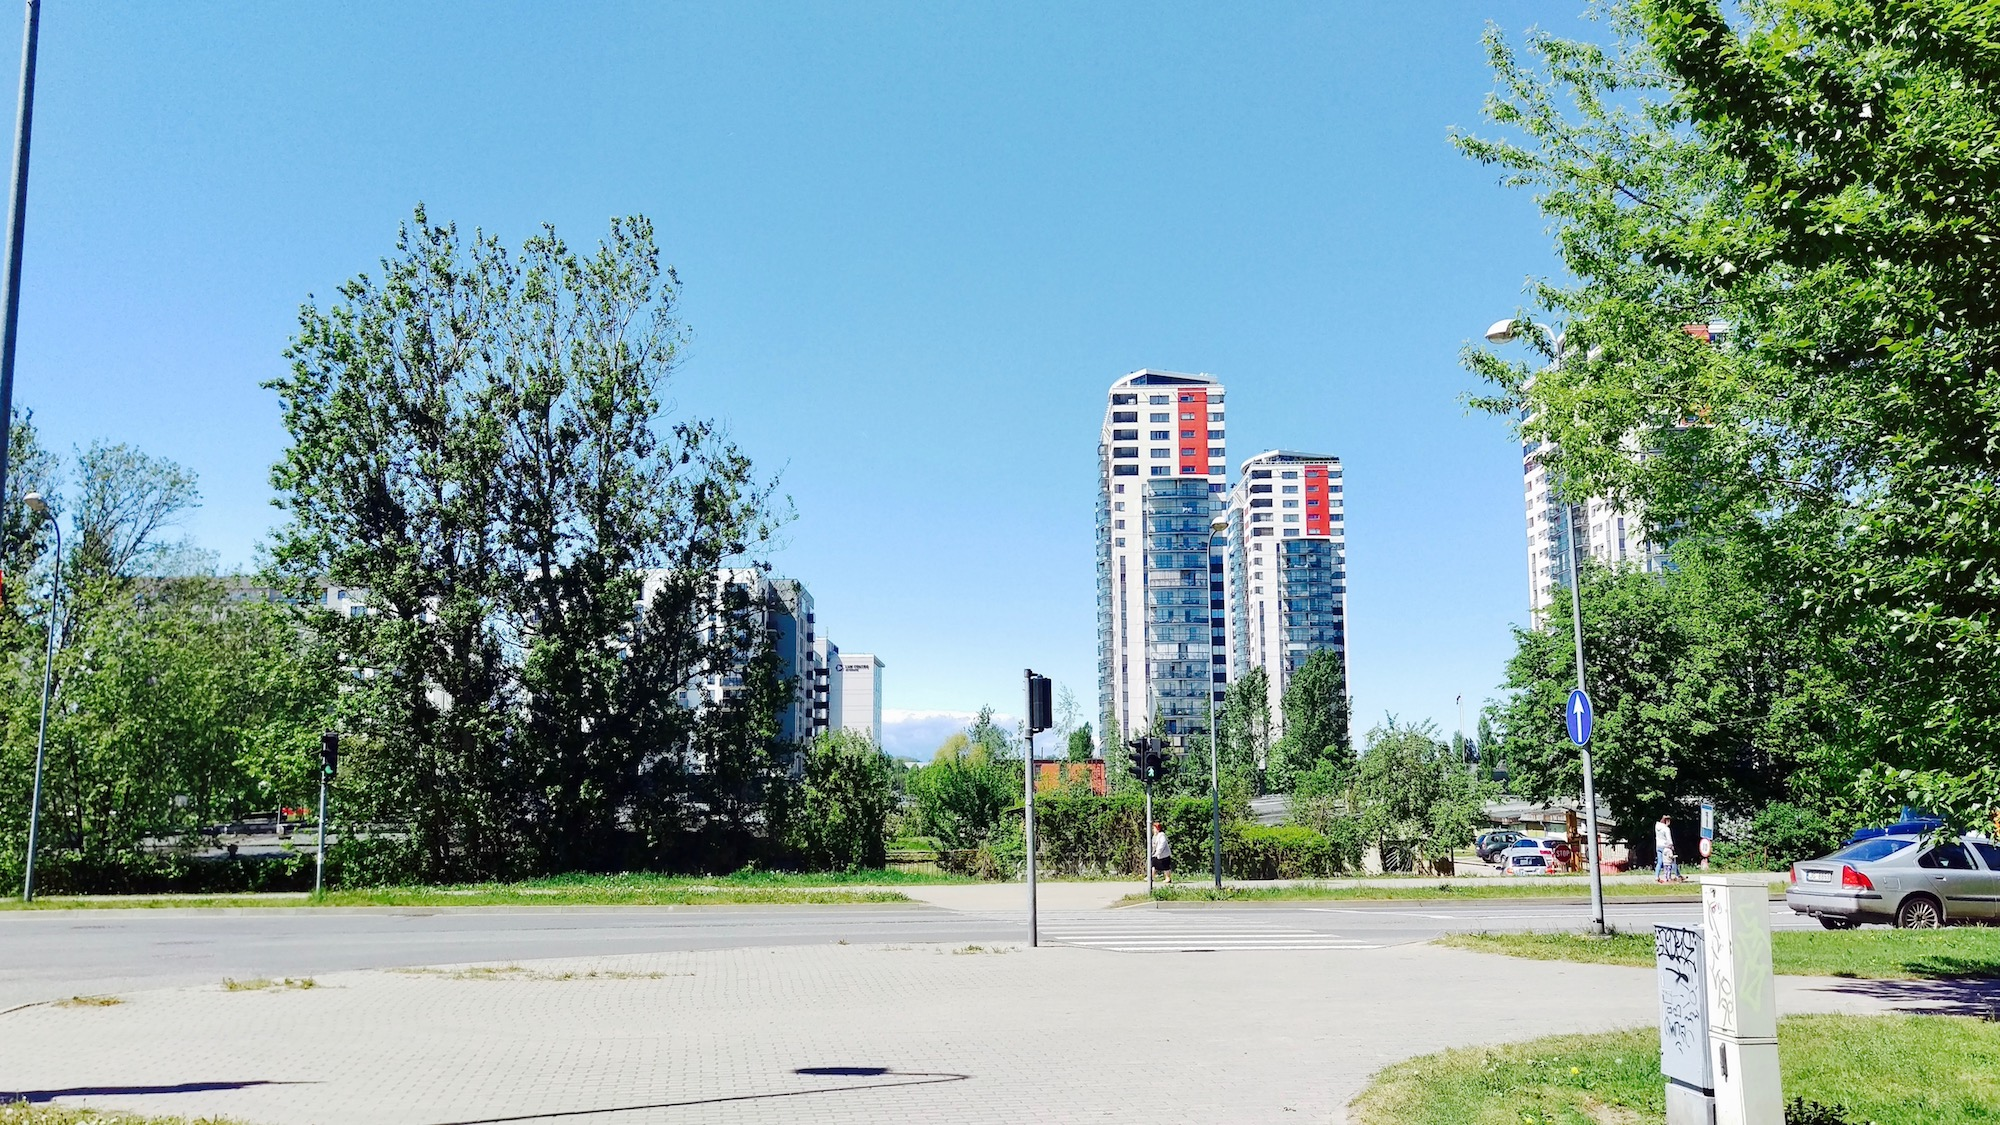 New Developments in Skanste neighborhood